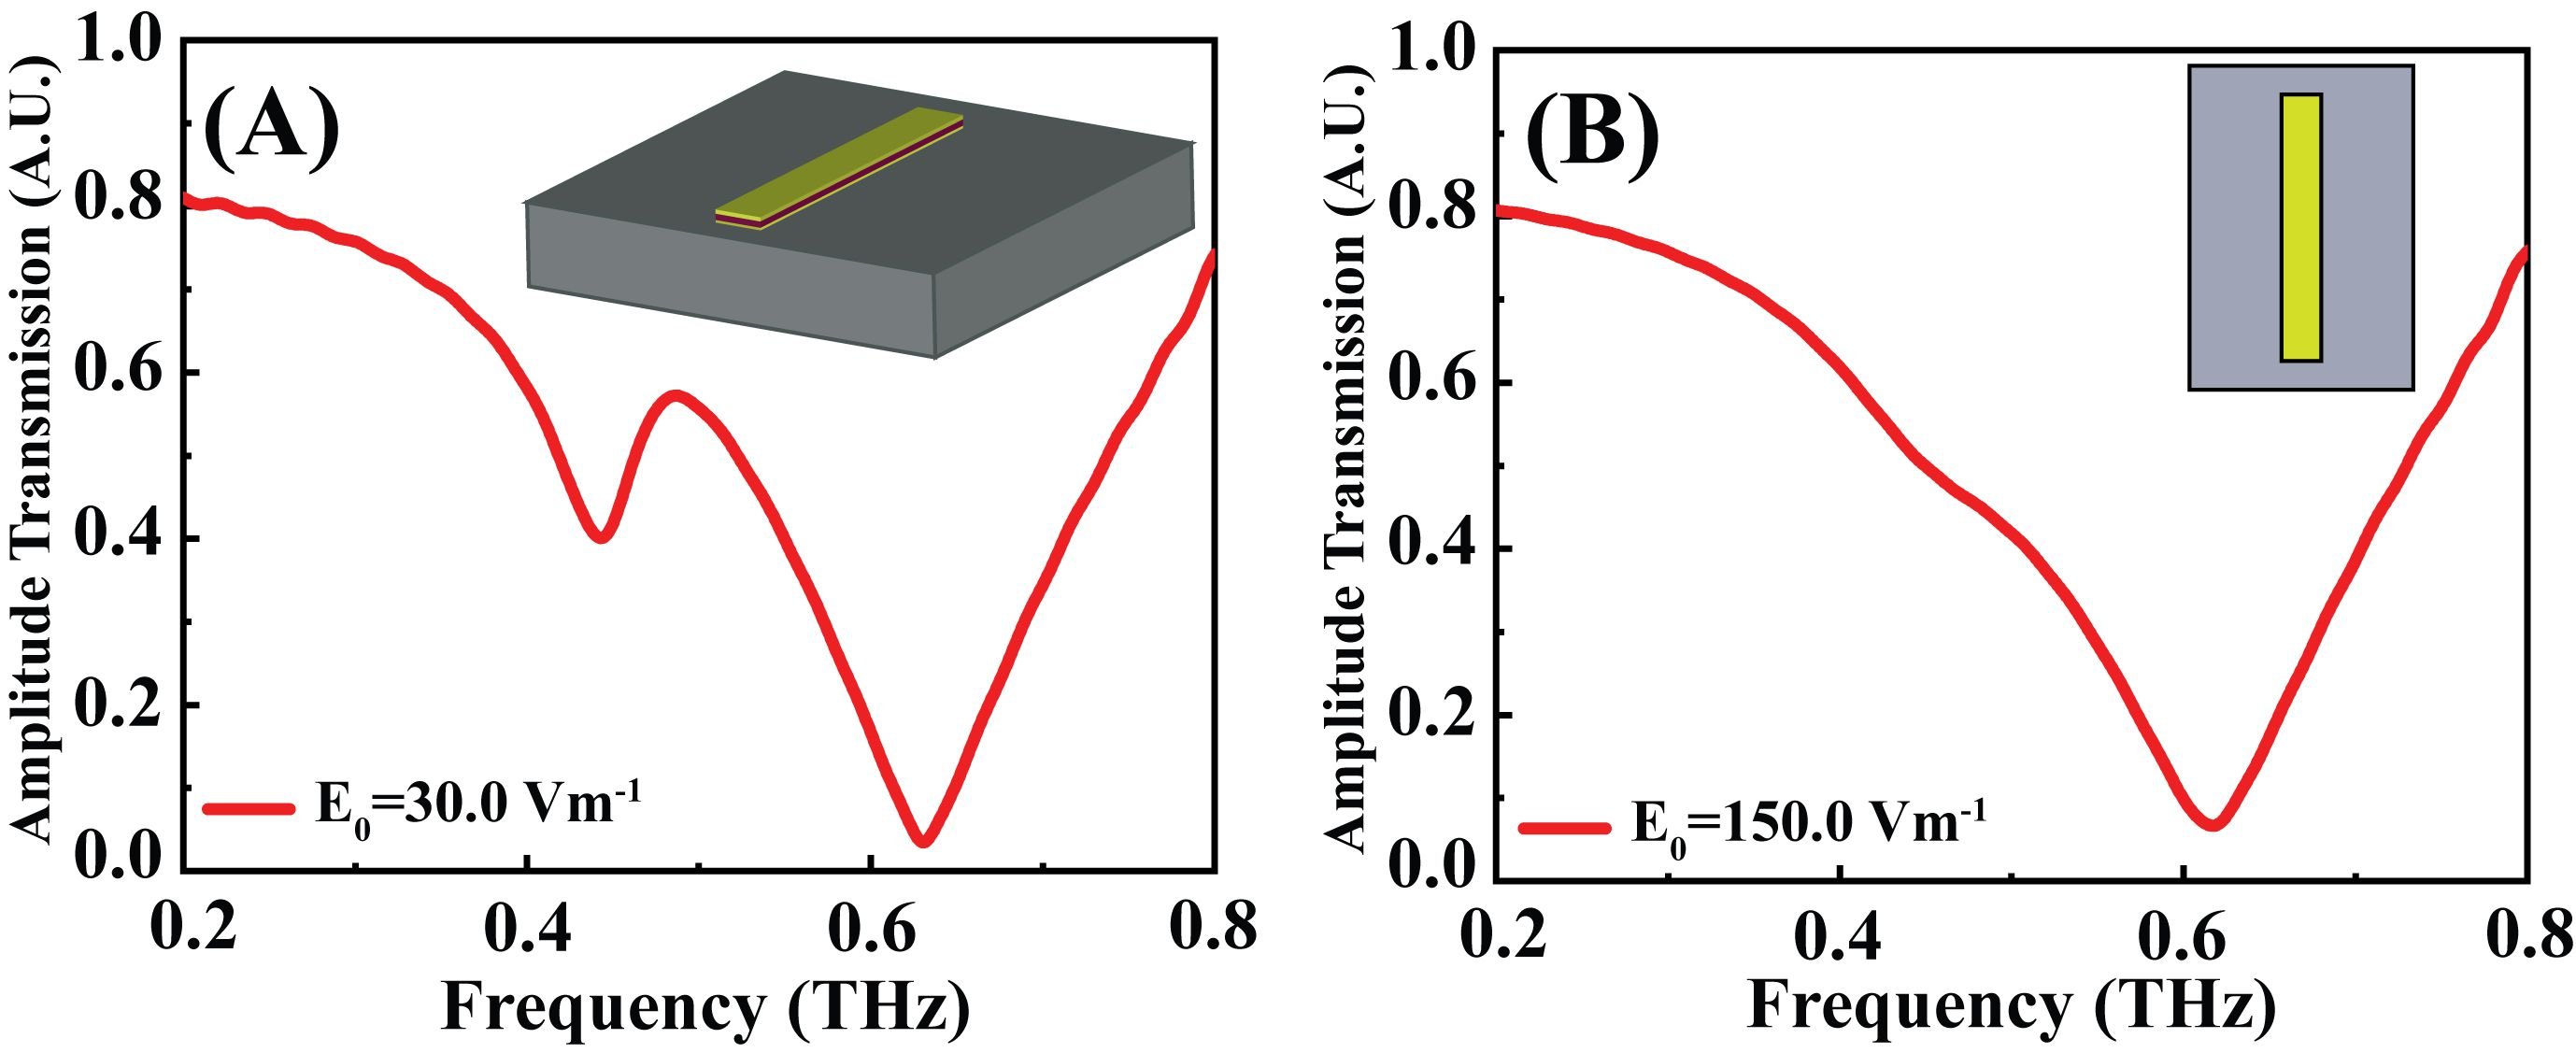 Fig.1. shows the amplitude transmission for the two cases having excitation magnitudes of 30Vm-1 and 150 Vm-1 respectively. The schematic of the multilayer metasurface studied is shown in the inset of (A) while the top view of the same has been shown in the inset of (B).